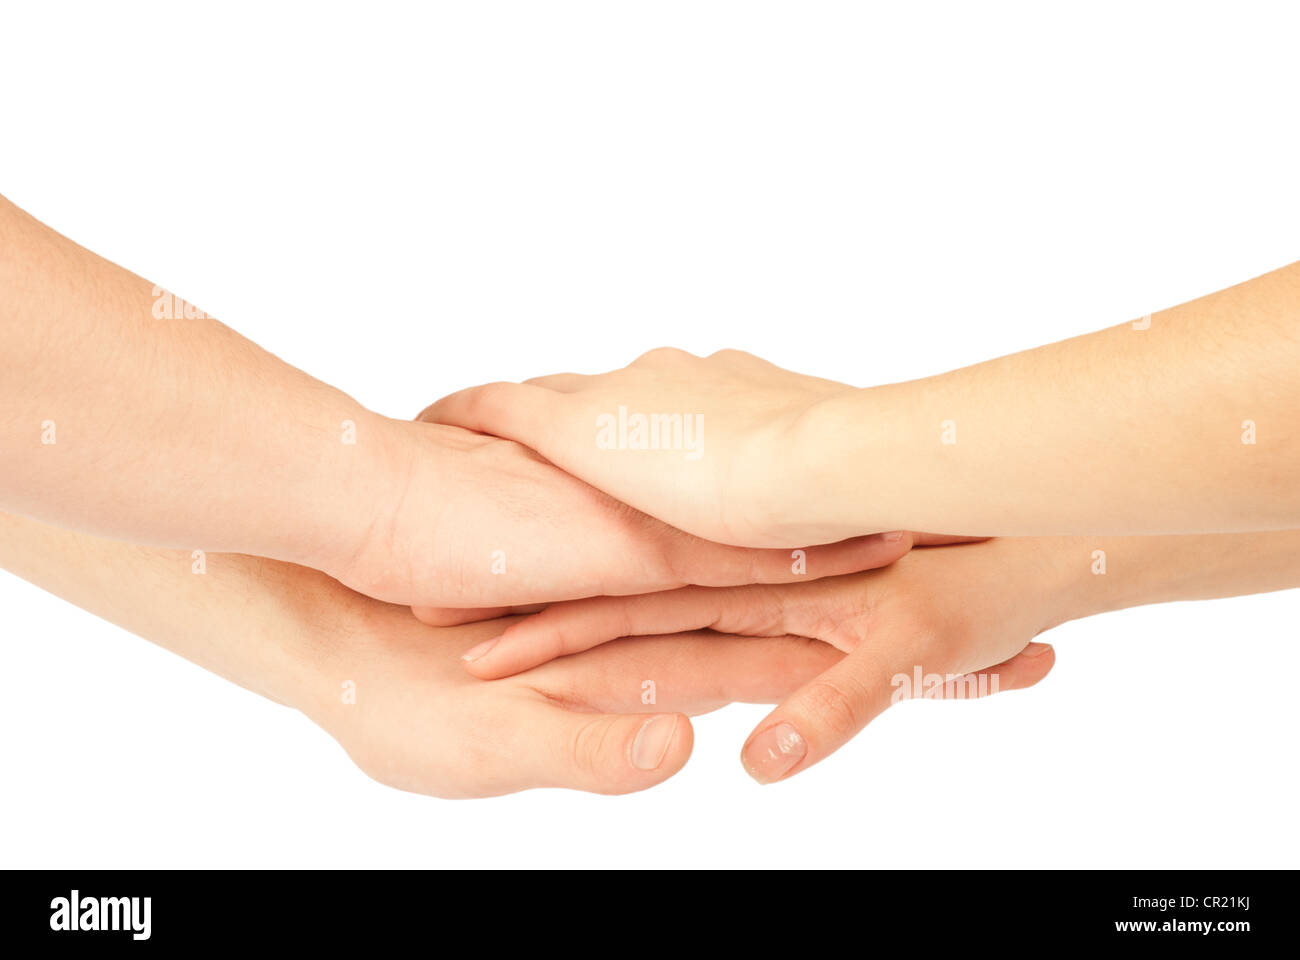 Hands on top of each other. Symbolic picture. - Stock Image